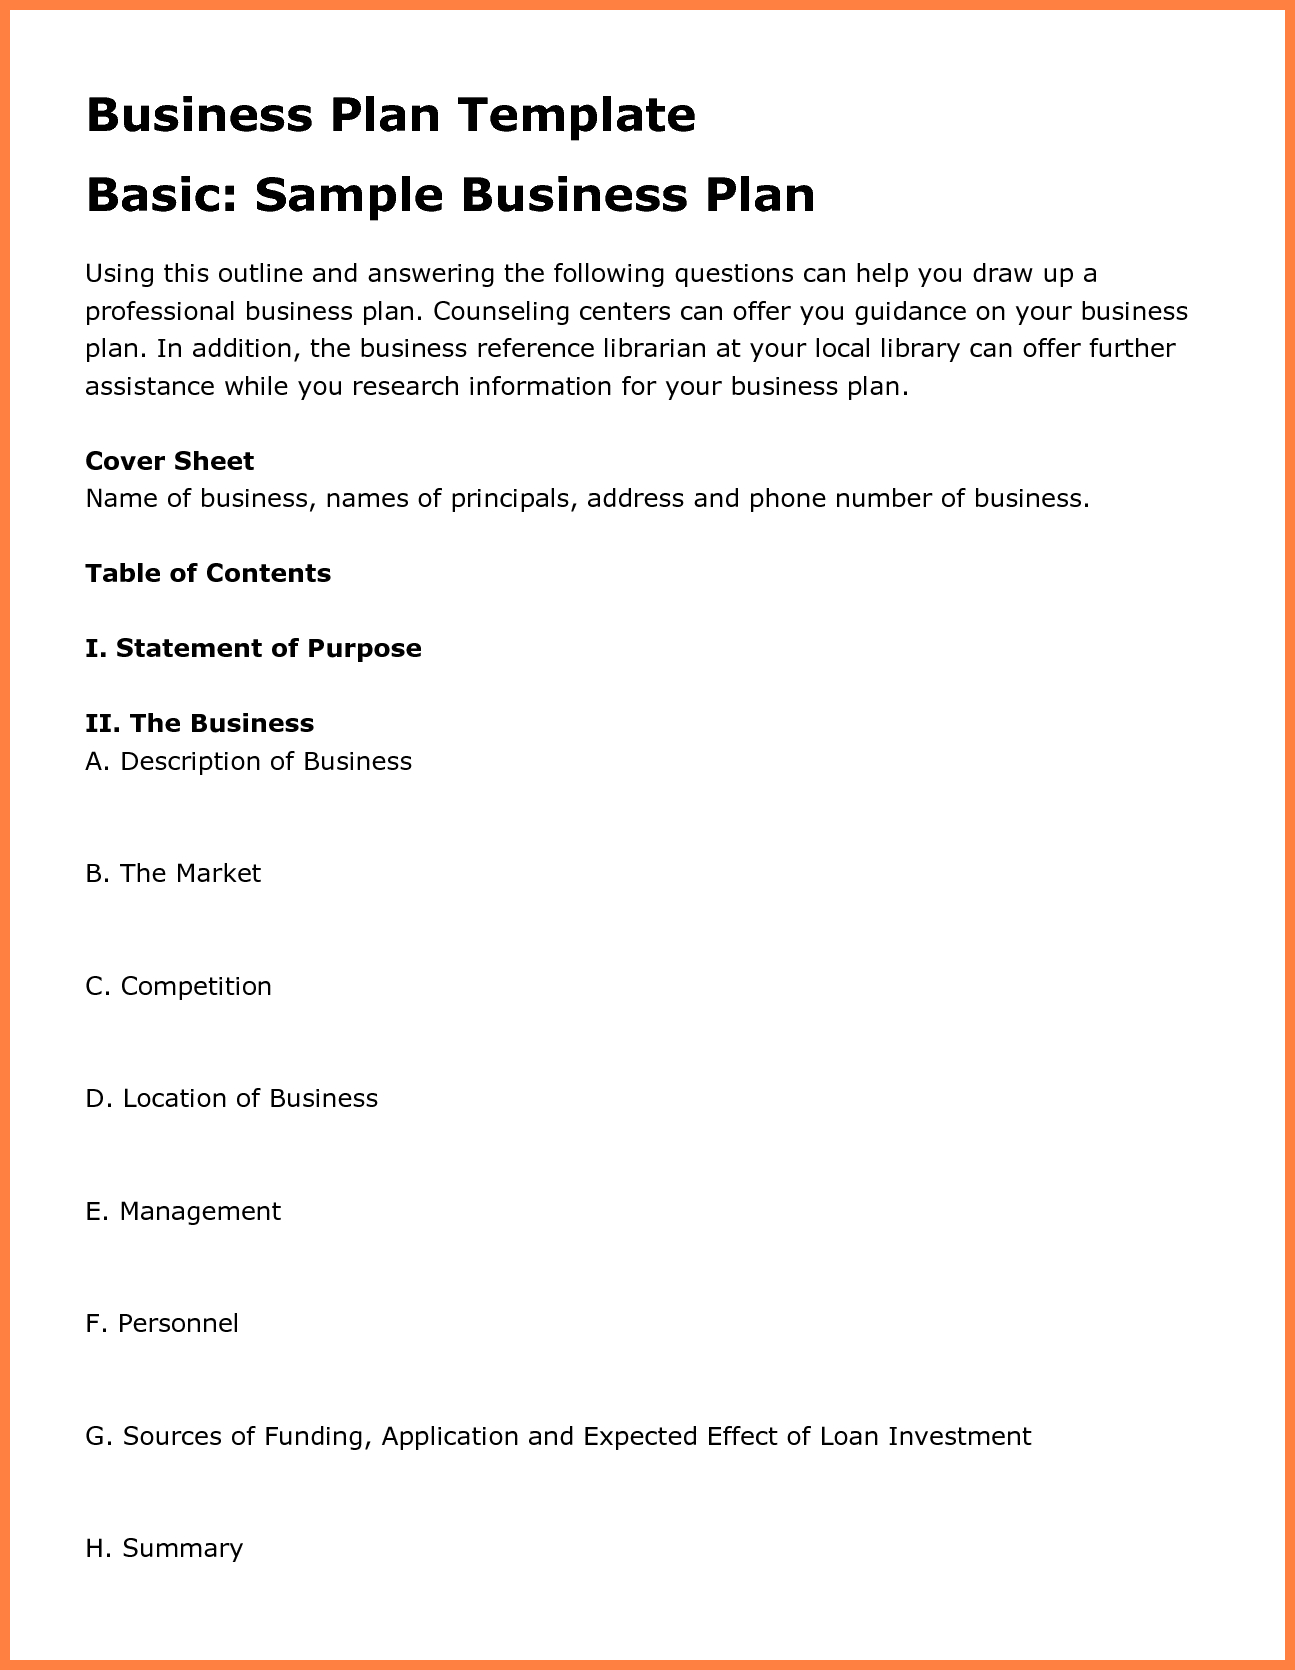 Agriculture Business Plan Template Free For And Cattle Farming Within Agriculture Business Plan Template Free